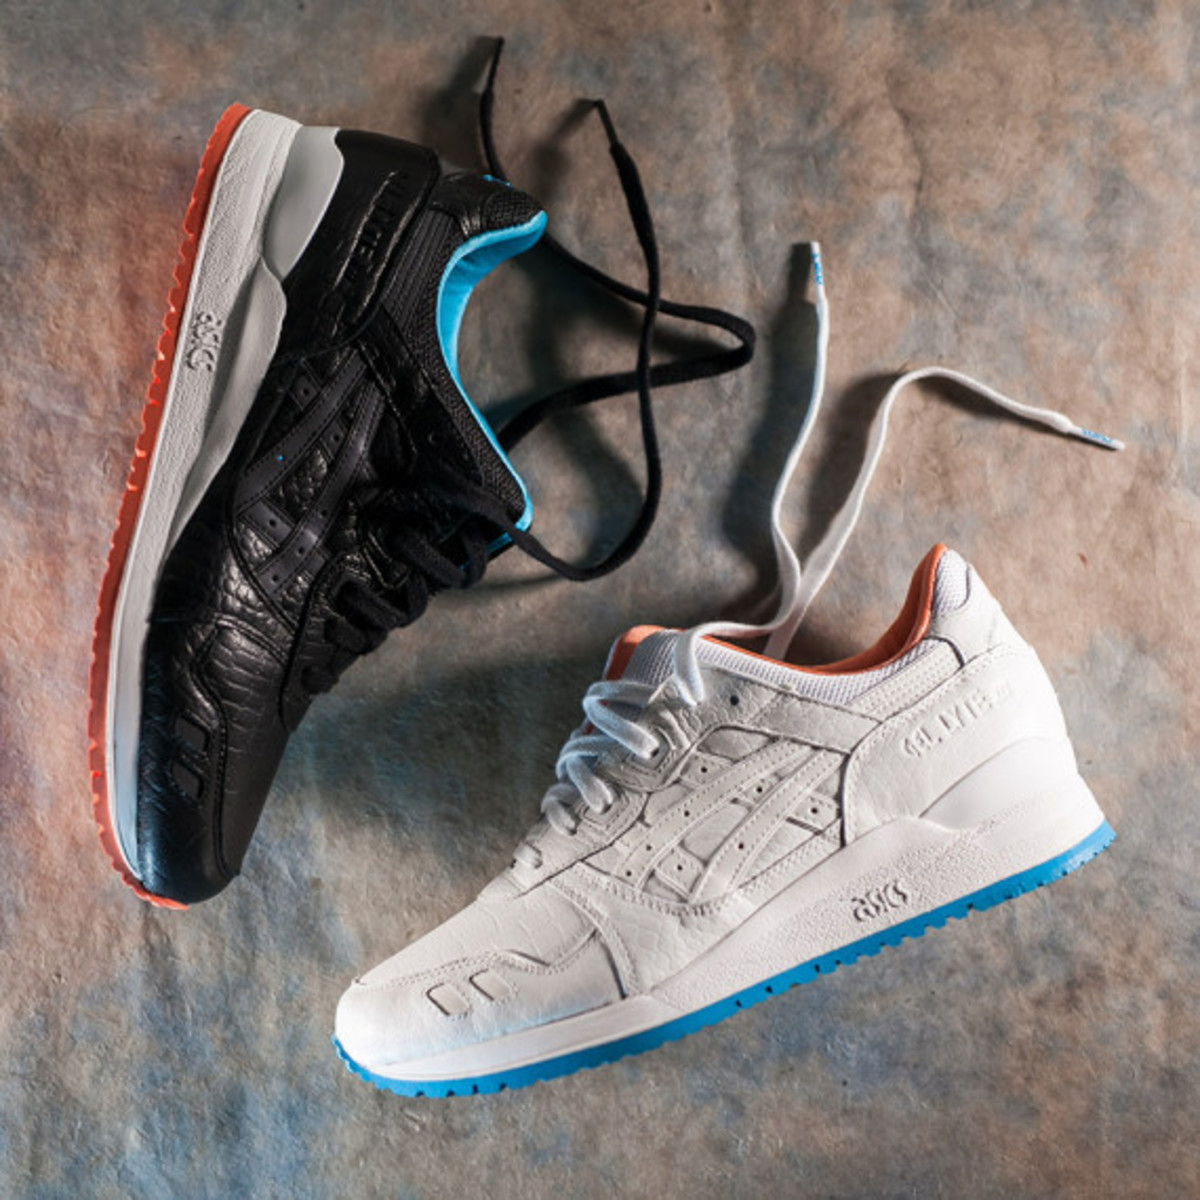 asics-gel-lyte-iii-miami-vice-pack-03